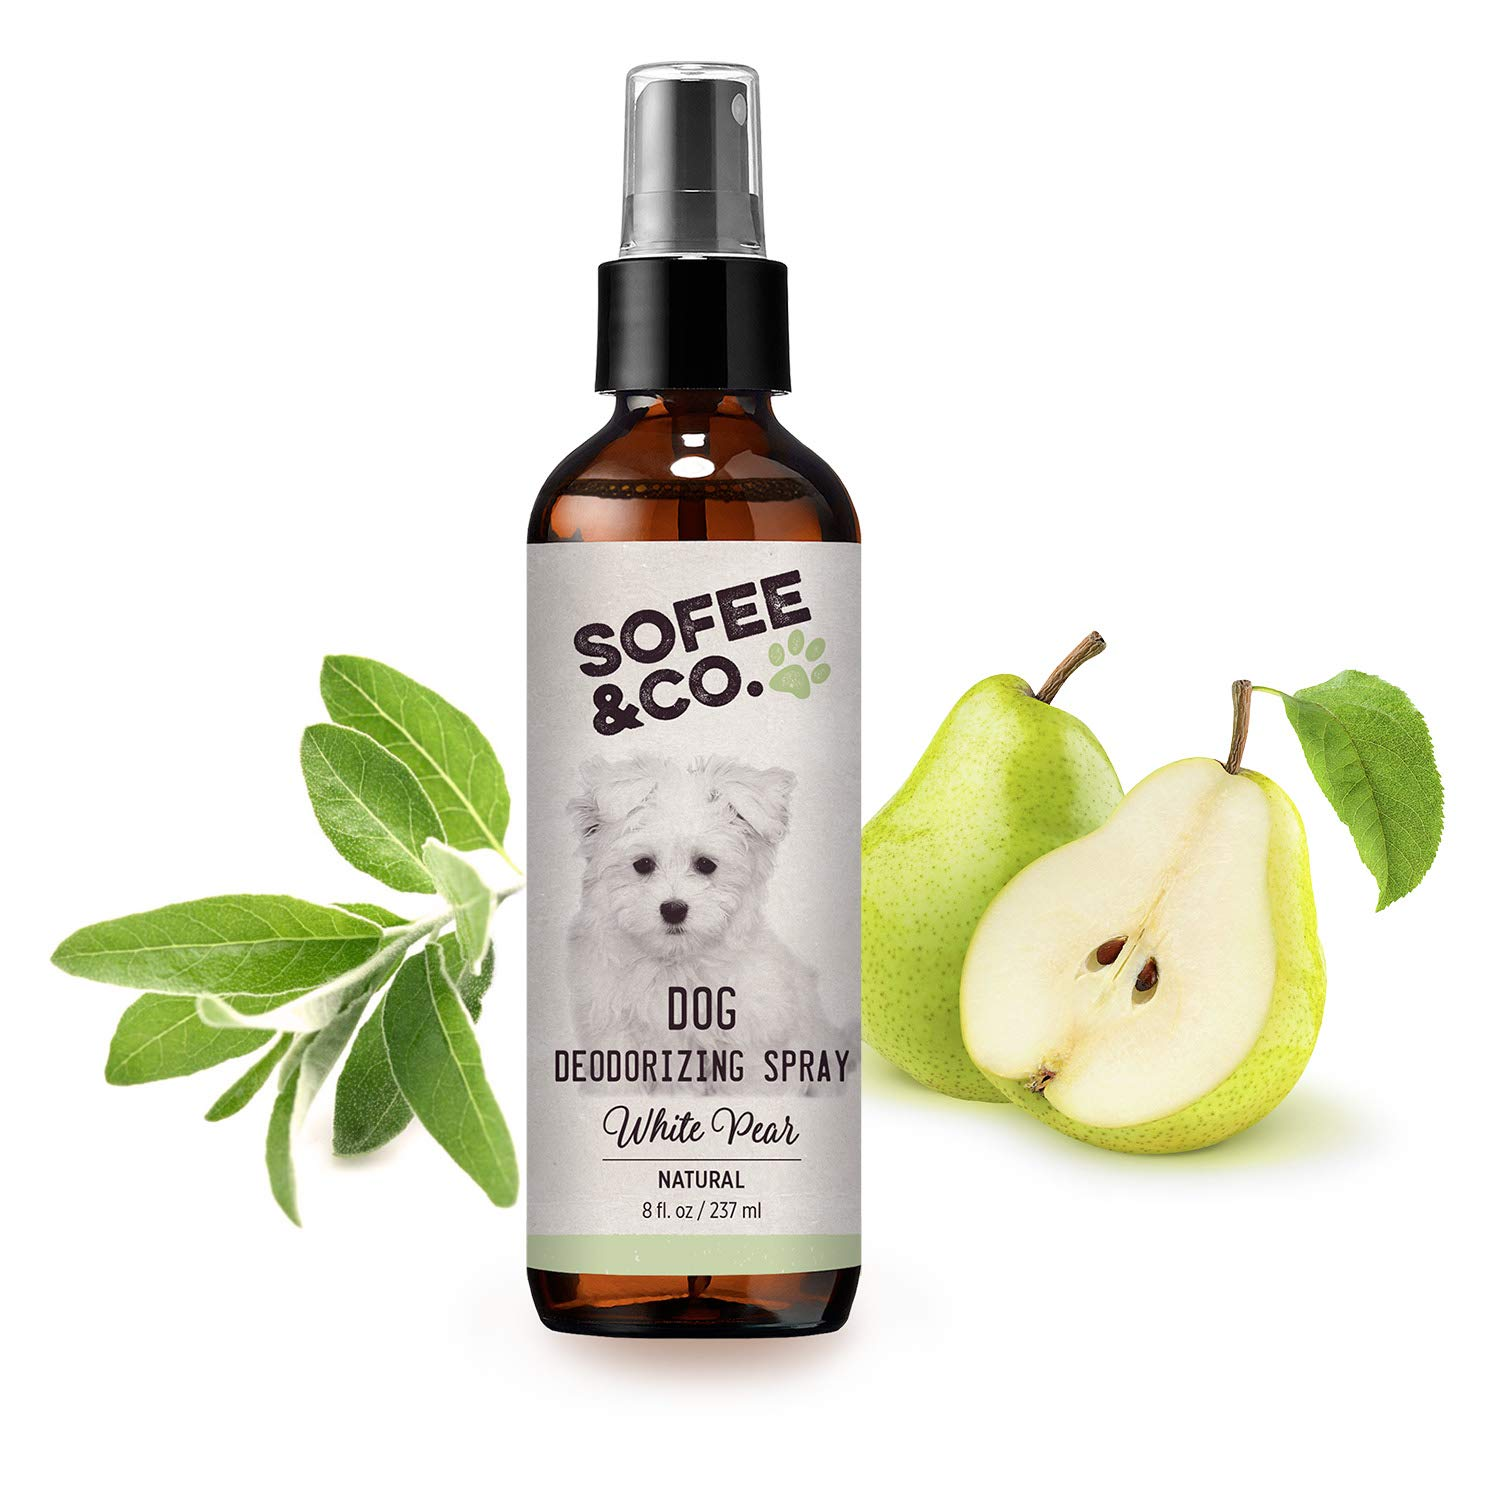 Sofee & Co. Natural Dog Puppy Deodorizing Grooming Spray - White Pear - Neutralize Eliminate Remove Odor Smell- Freshener Perfume Cologne. Use Directly On Pets Furniture Bedding Carpet Rug Room 8oz by Sofee & Co.